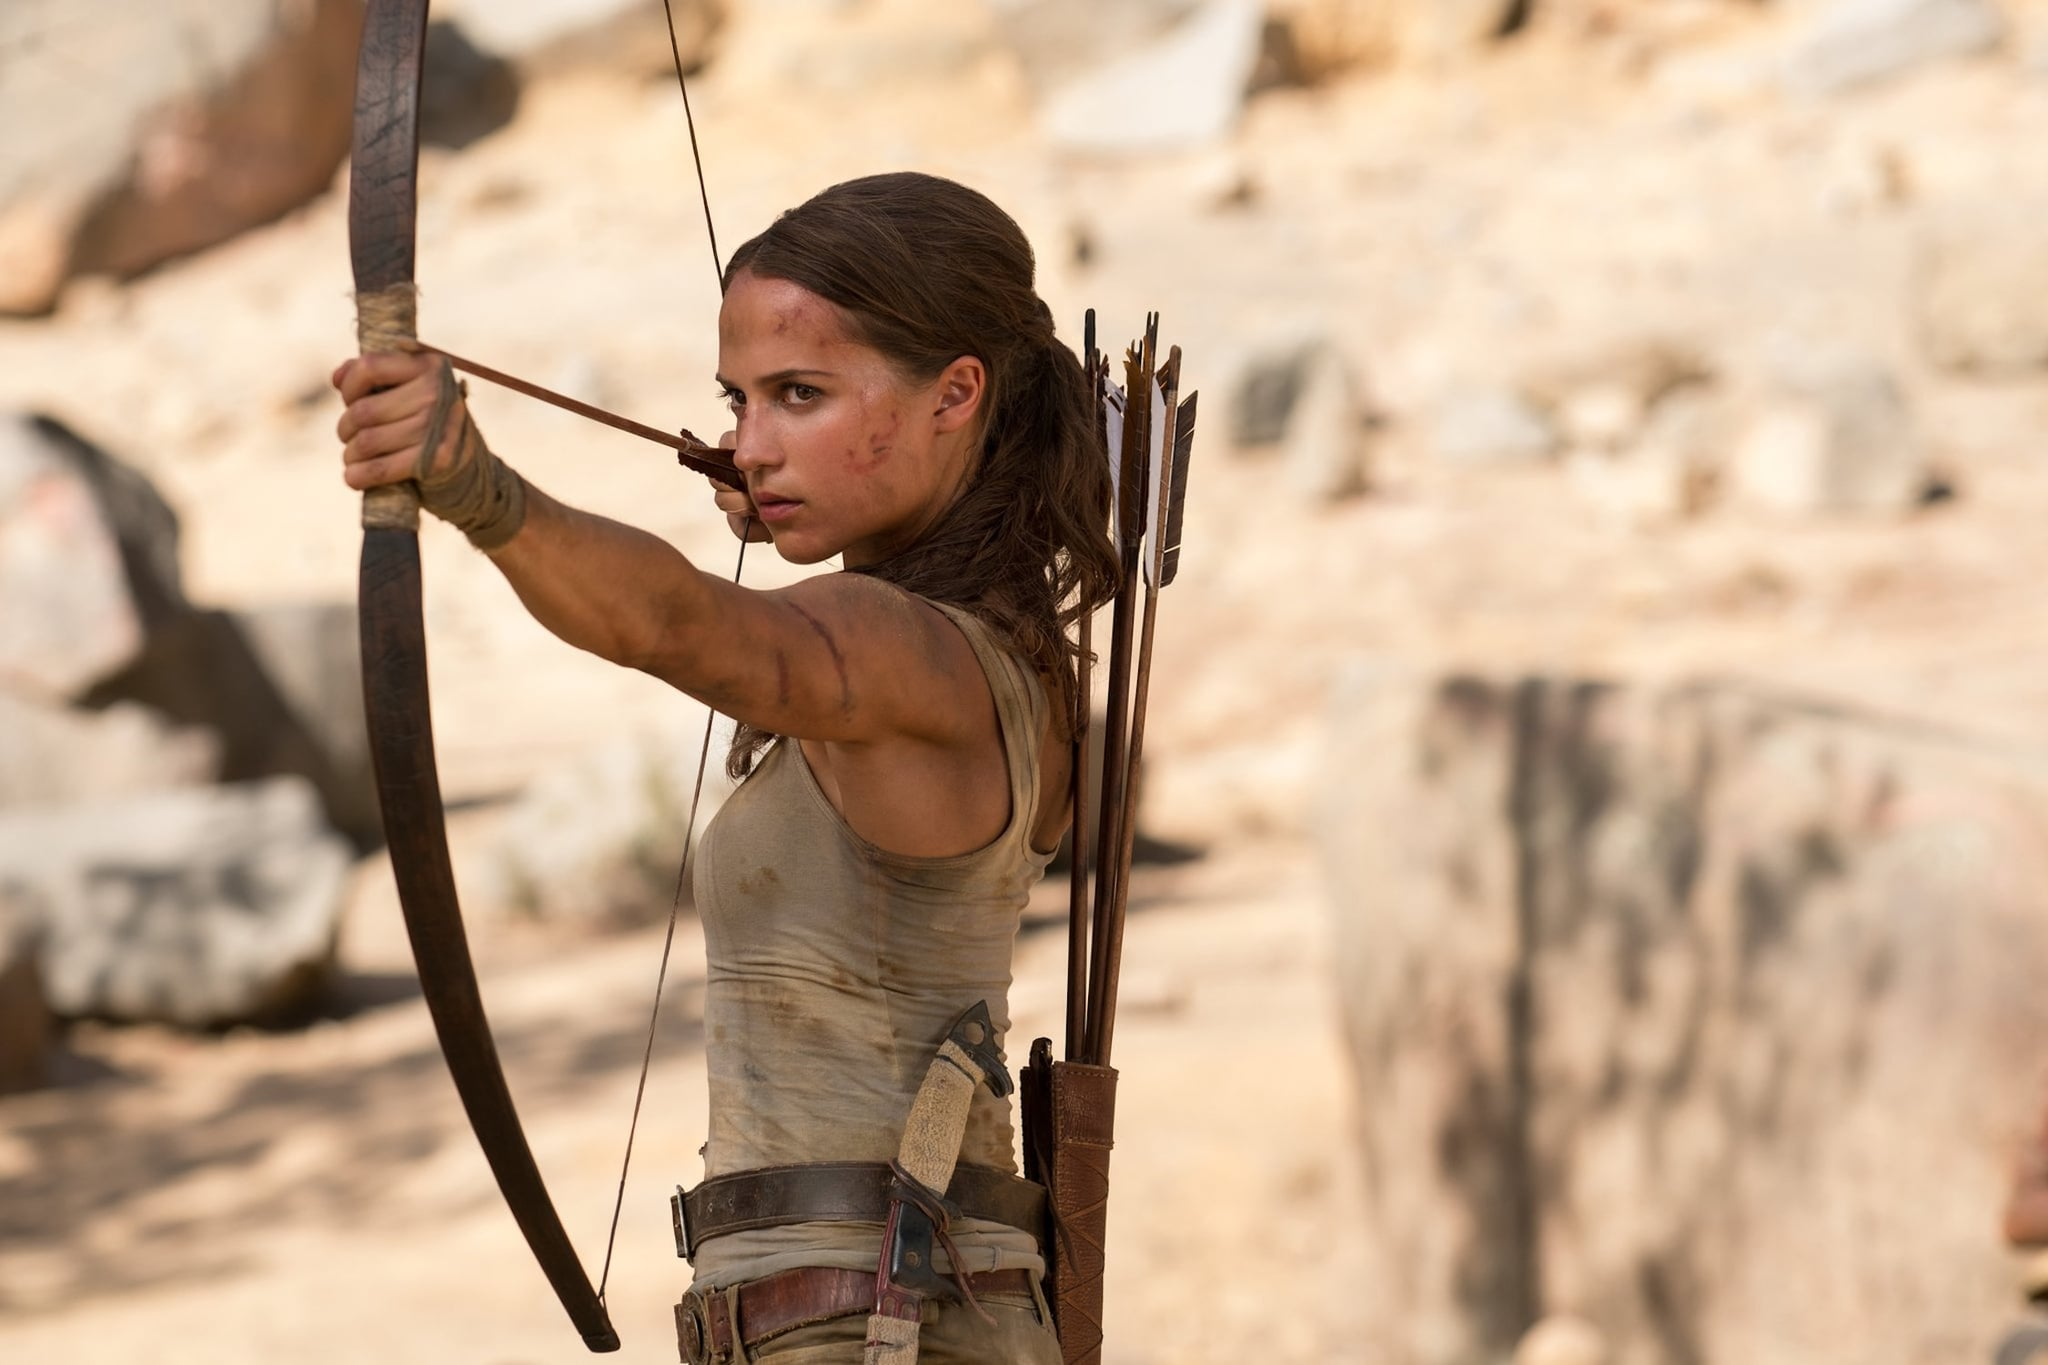 These 4 Workouts Helped Alicia Vikander Sculpt Her Insane Washboard Abs For Tomb Raider